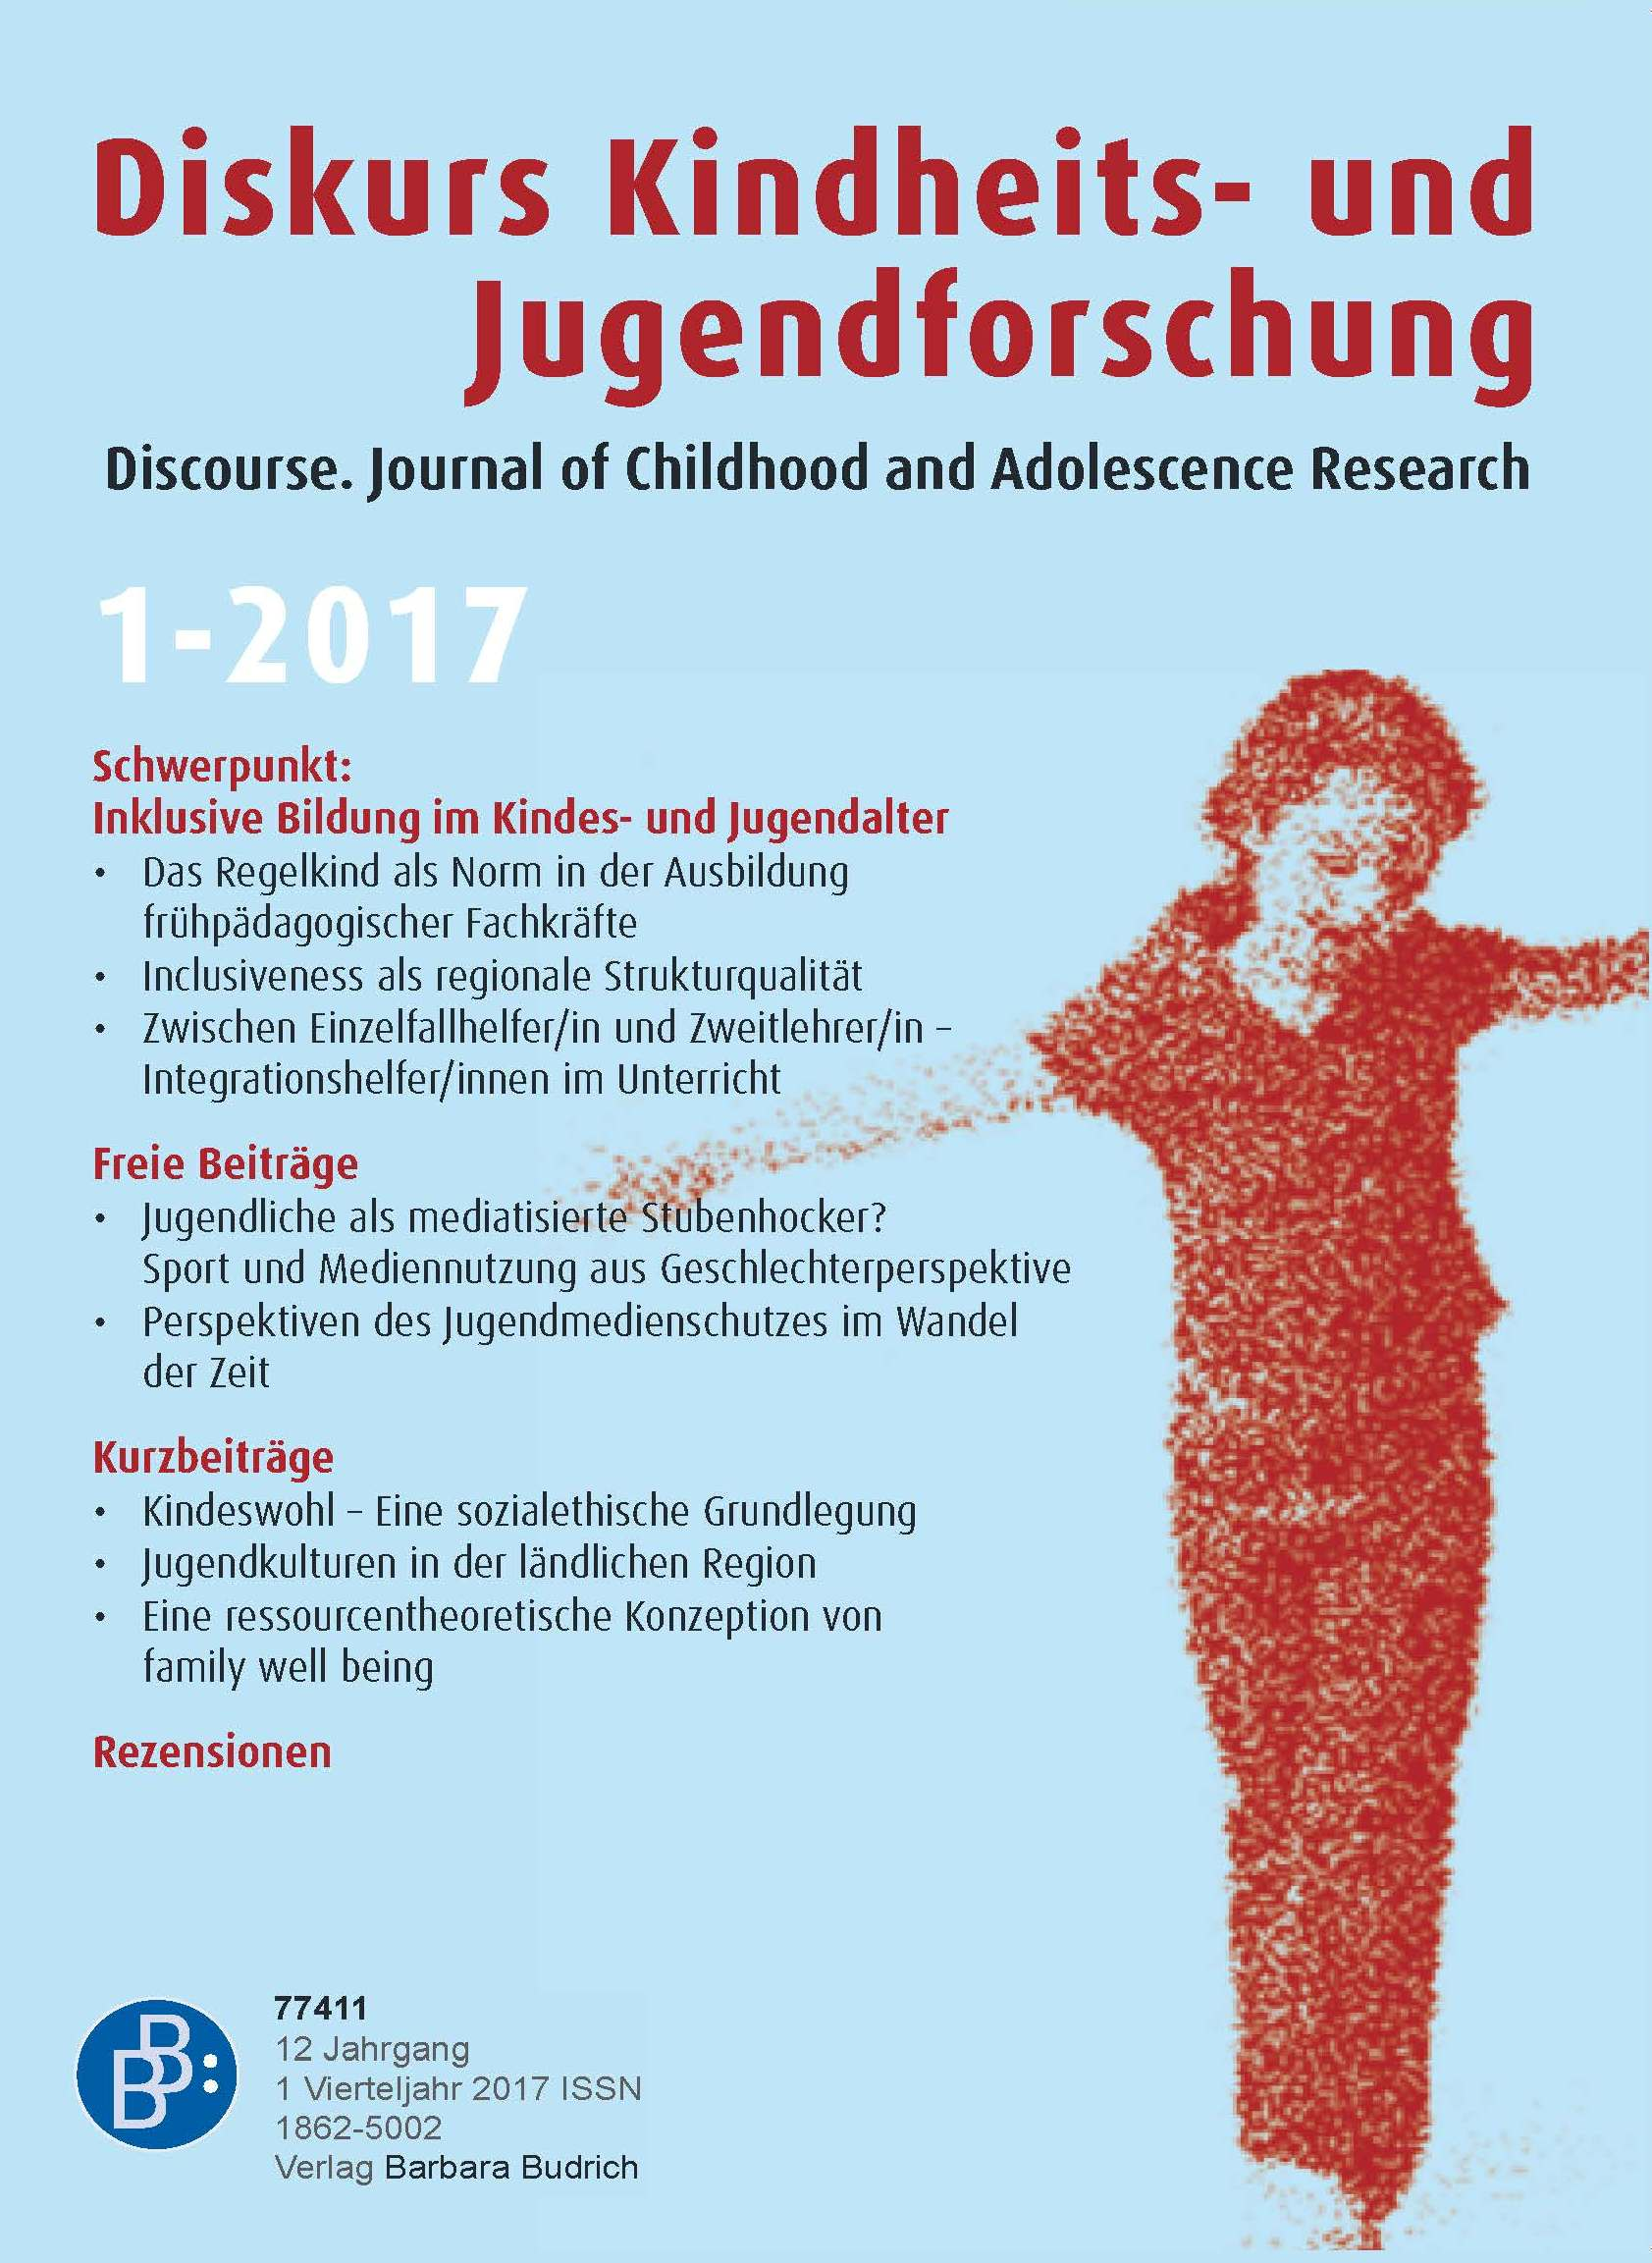 Diskurs Kindheits- und Jugendforschung / Discourse. Journal of Childhood and Adolescence Research 1-2017: Inklusive Bildung im Kindes- und Jugendalter